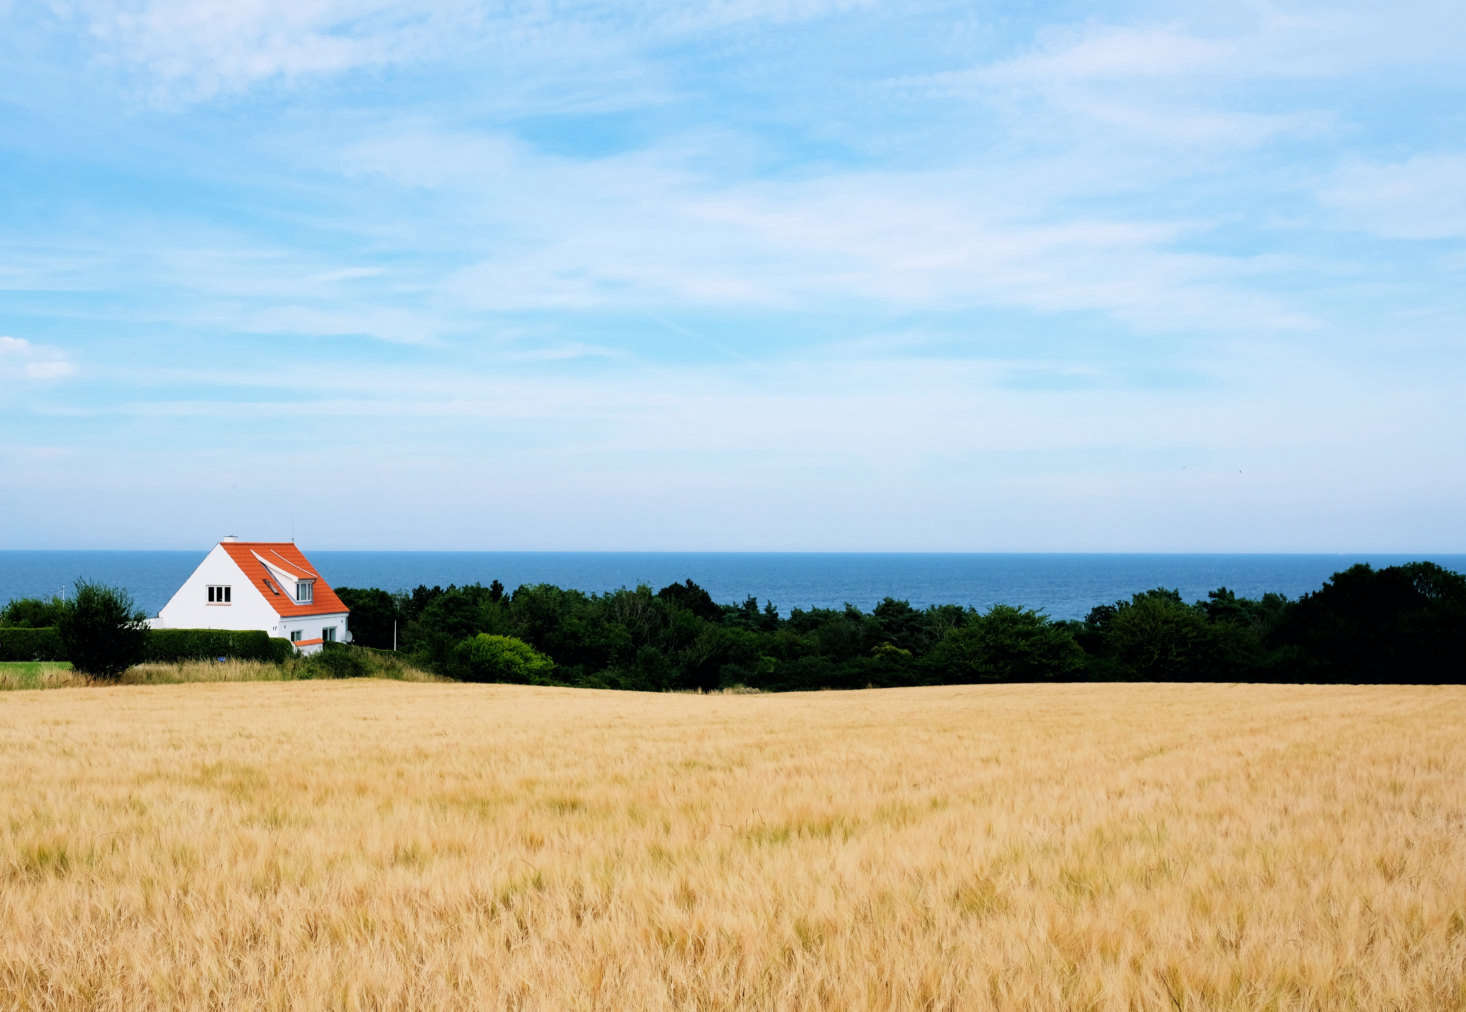 A red roof adds color to a landscape in Tejn on the northeastern coast of the island of Bornholm. Photograph by Lars Plougmann via Flickr.